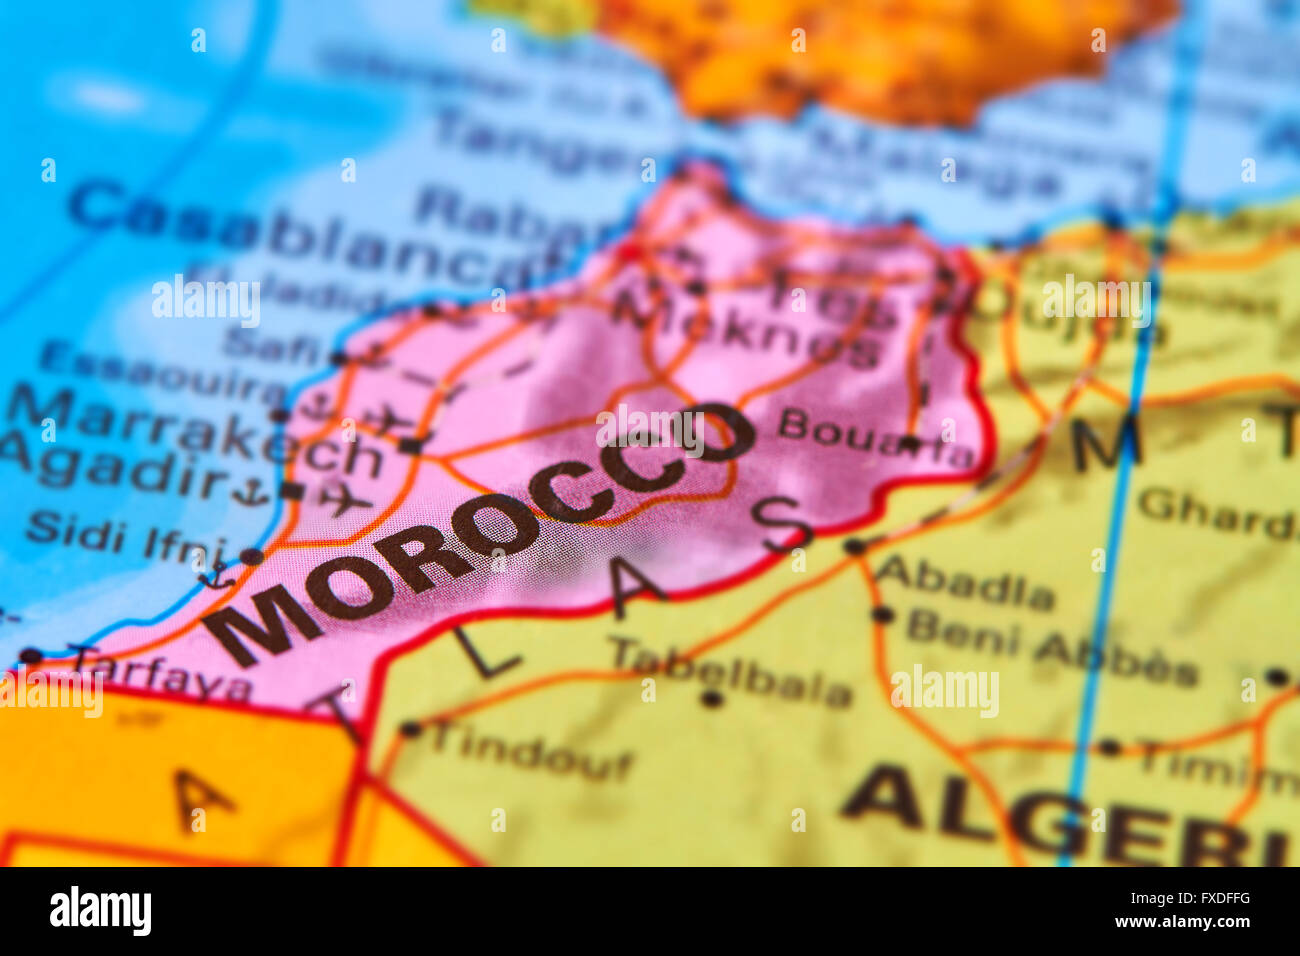 Morocco Country In Africa On The World Map Stock Photo 102330468